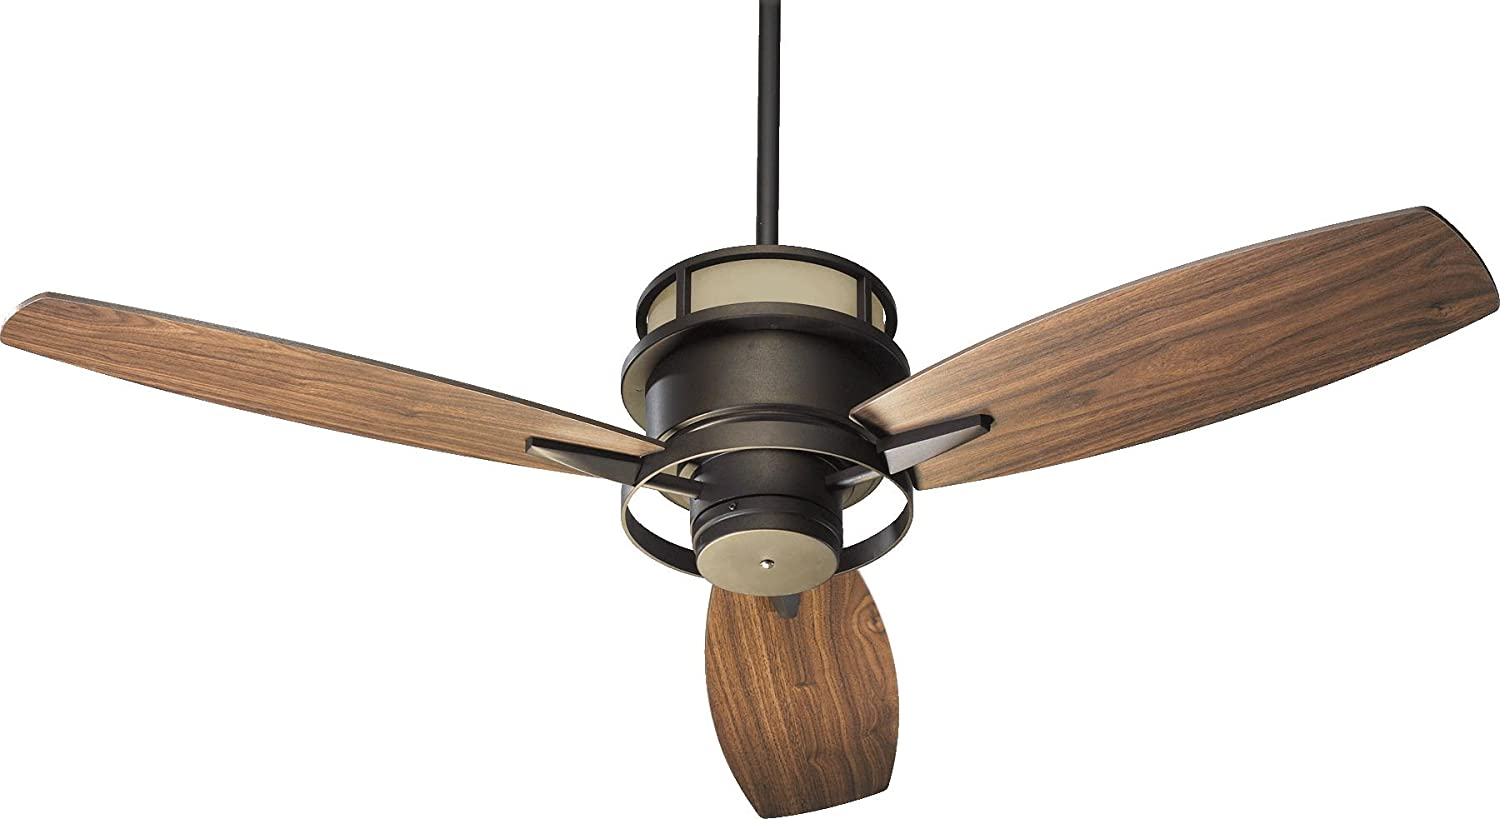 Quorum 54543 86 bristol oiled bronze uplight 54 ceiling fan with wall control ceiling fans with lights amazon com